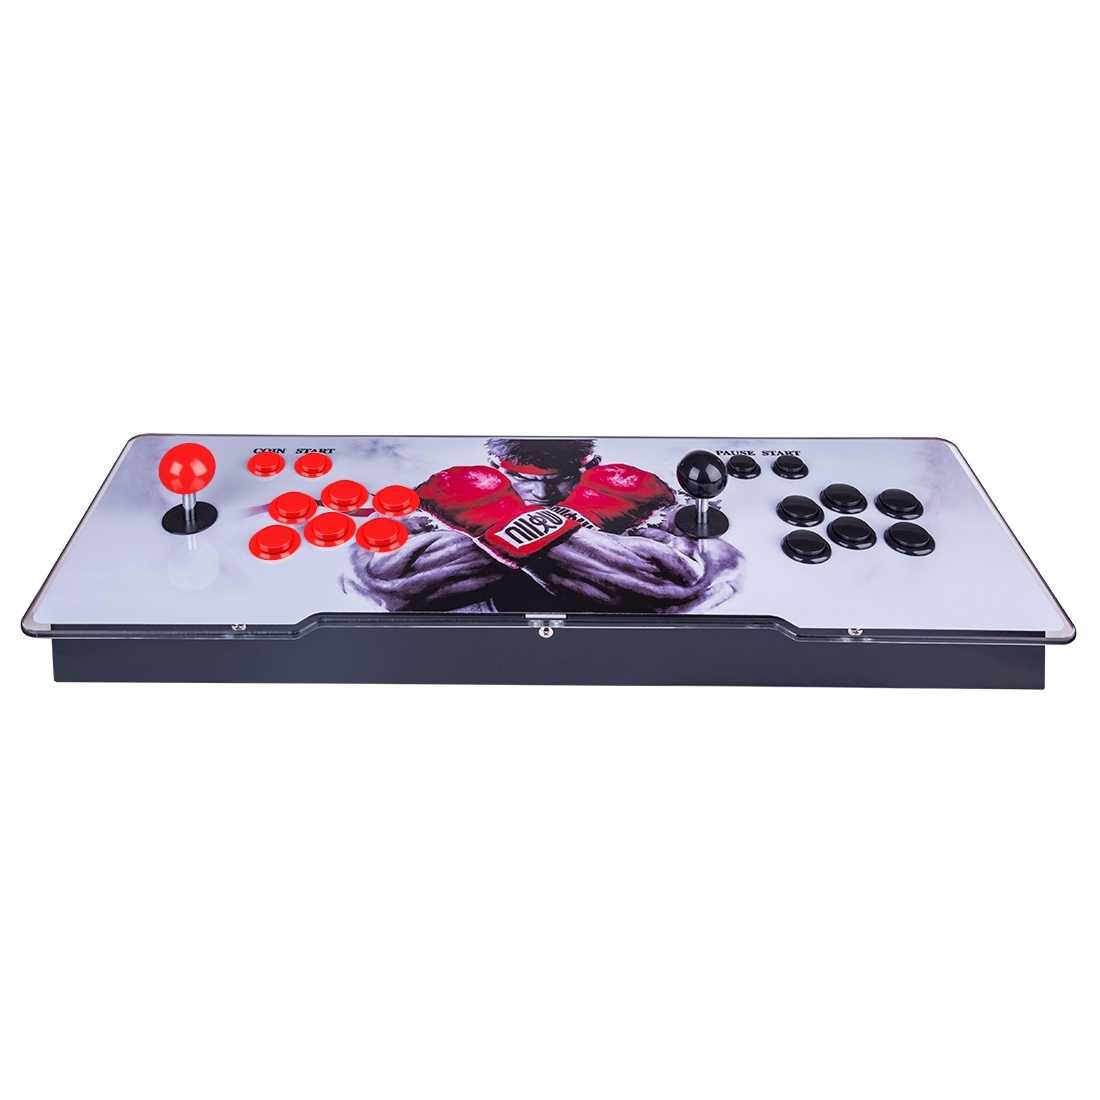 Pandora Box 3D 18S Pro 4000 Games Multi-player Arcade Game Console WiFi Version (Artwork: Black Dragon)